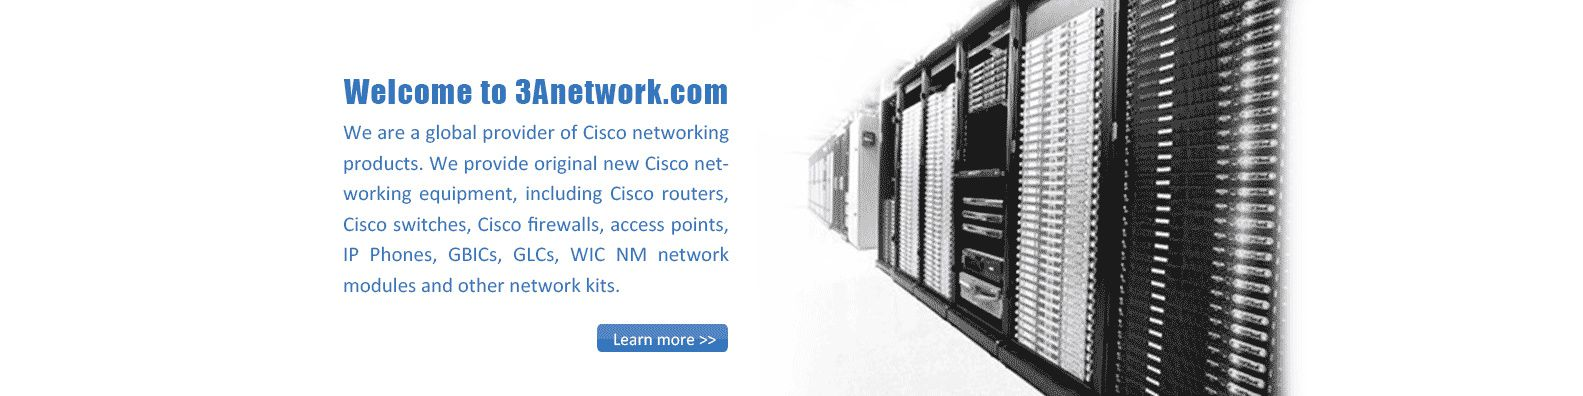 How to recover password for the Cisco 1900 and 2900 router